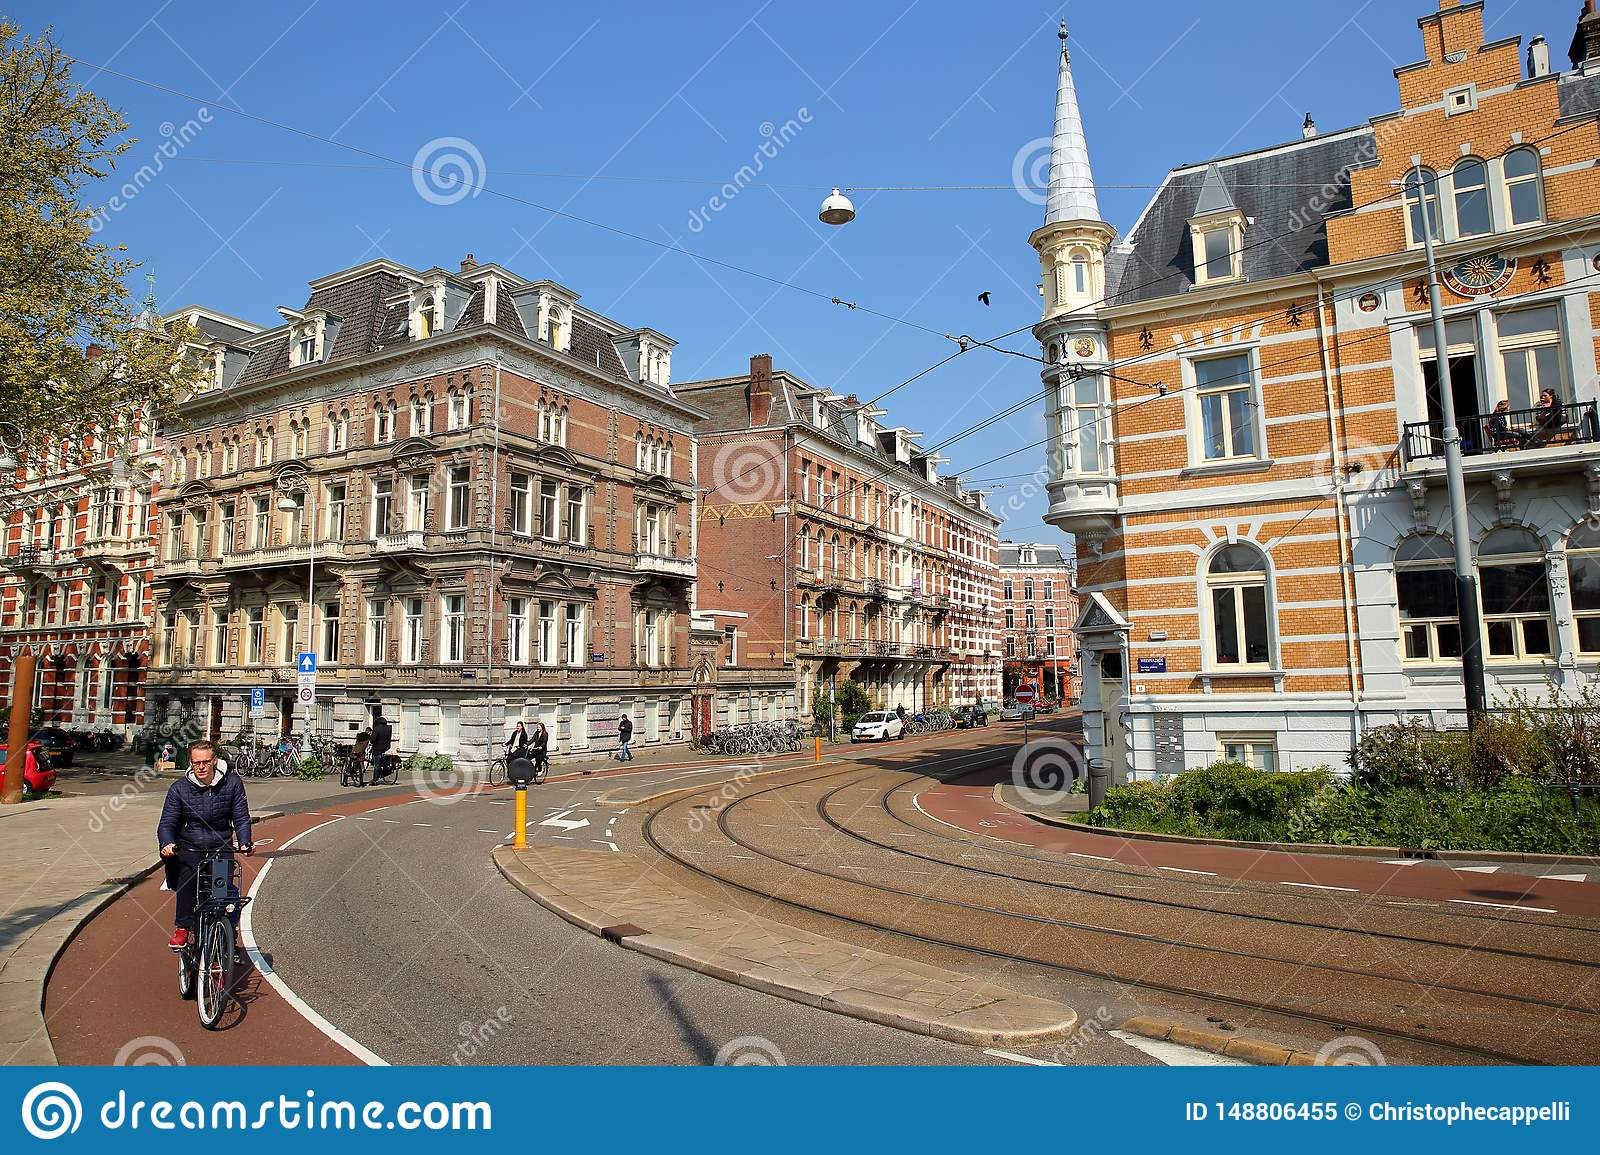 Traditional dutch old facades located on Weesperzijde Street along Amstel river, with people cycling in the foreground